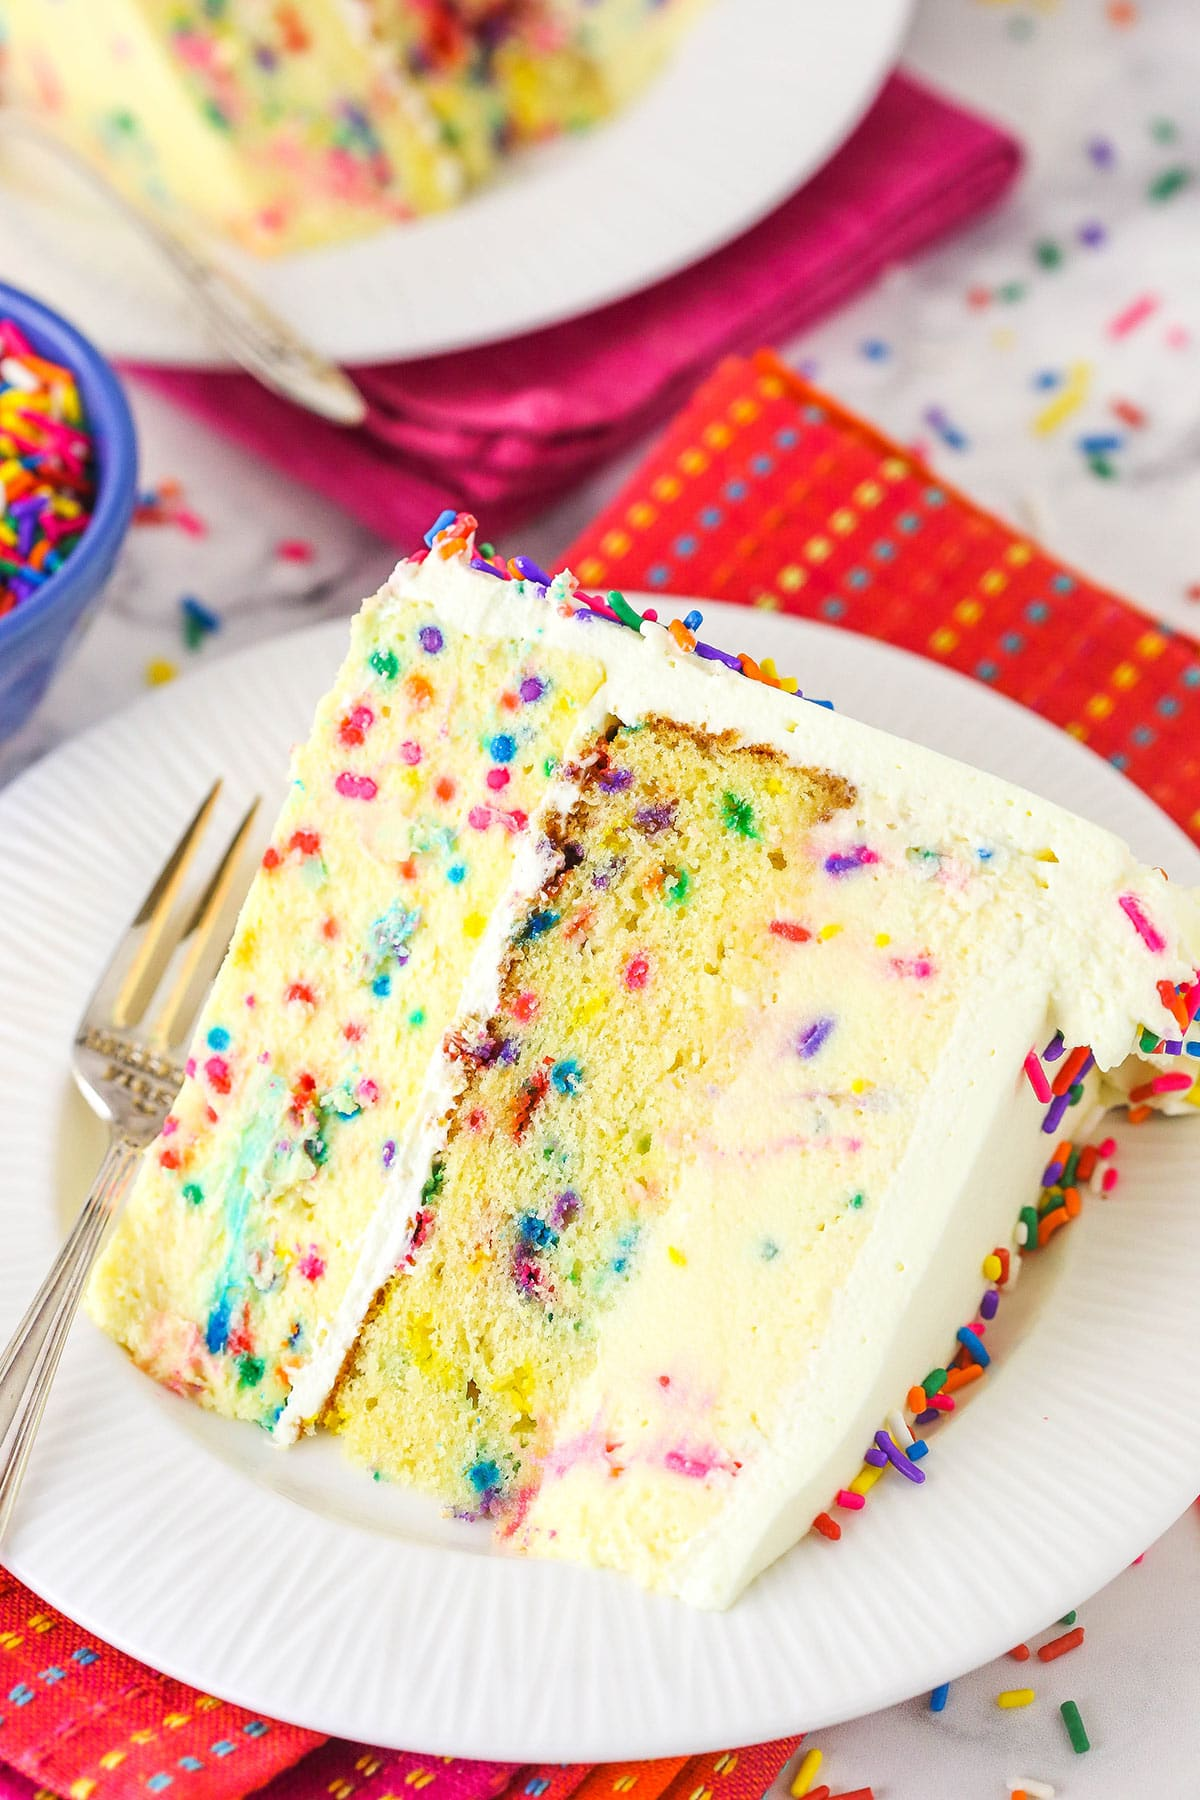 A slice of funfetti millionaire cake on a whit eplate